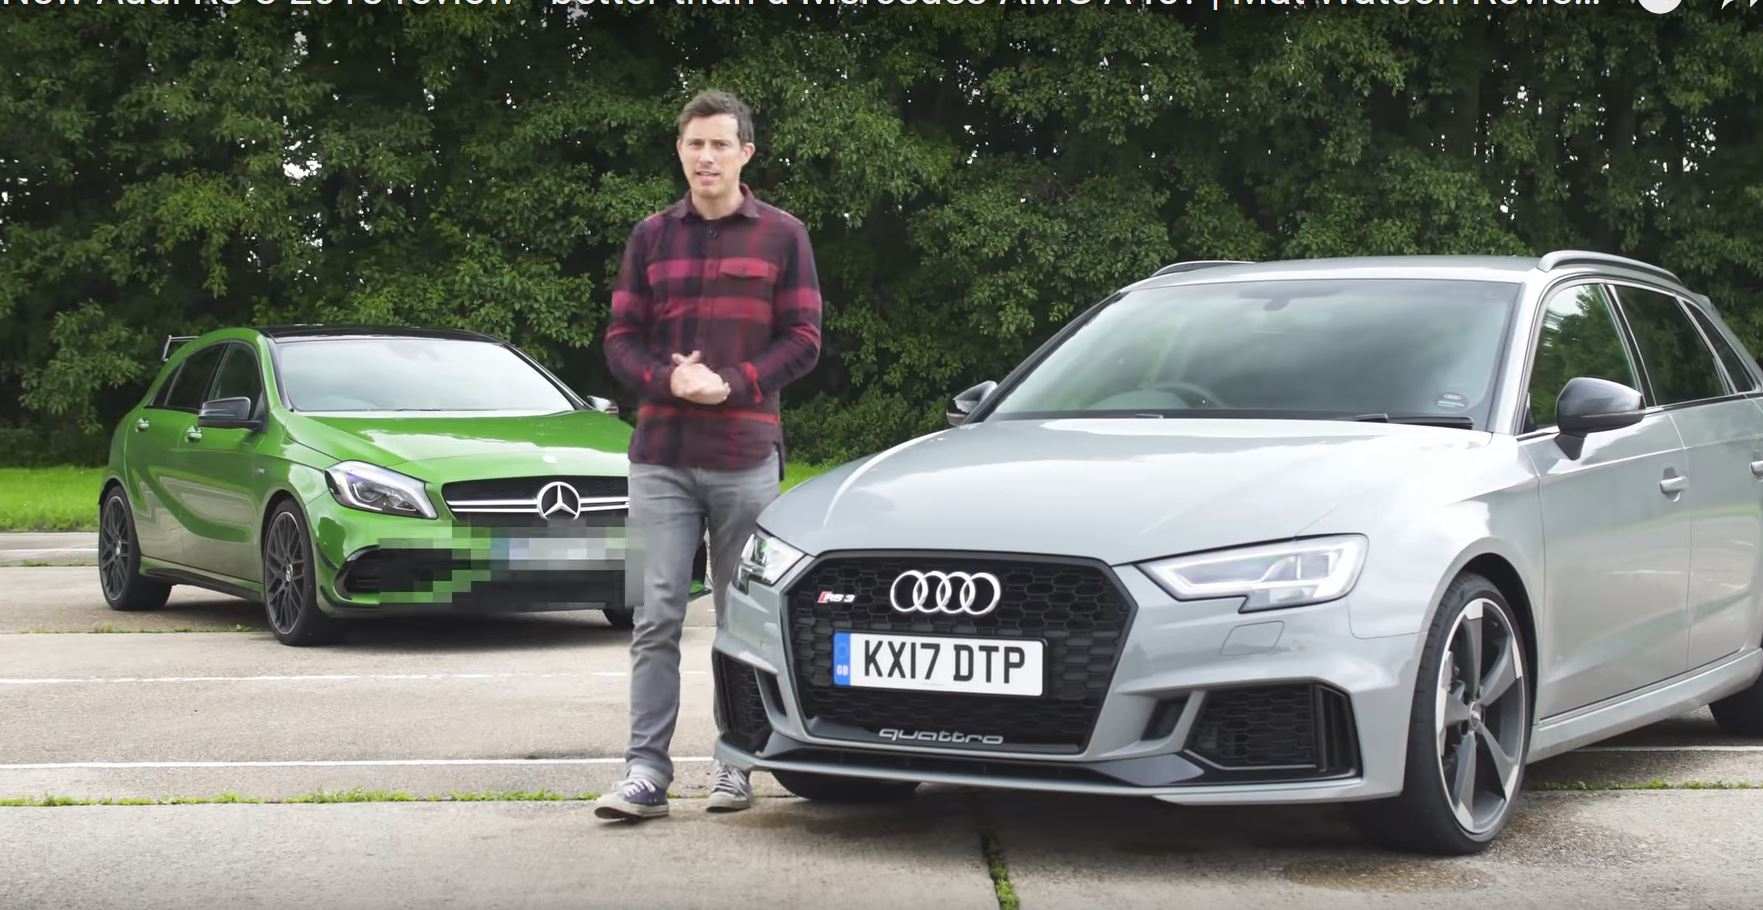 2018 Audi RS3 Hatchback Is More Fun Than Mercedes-AMG A45, Says